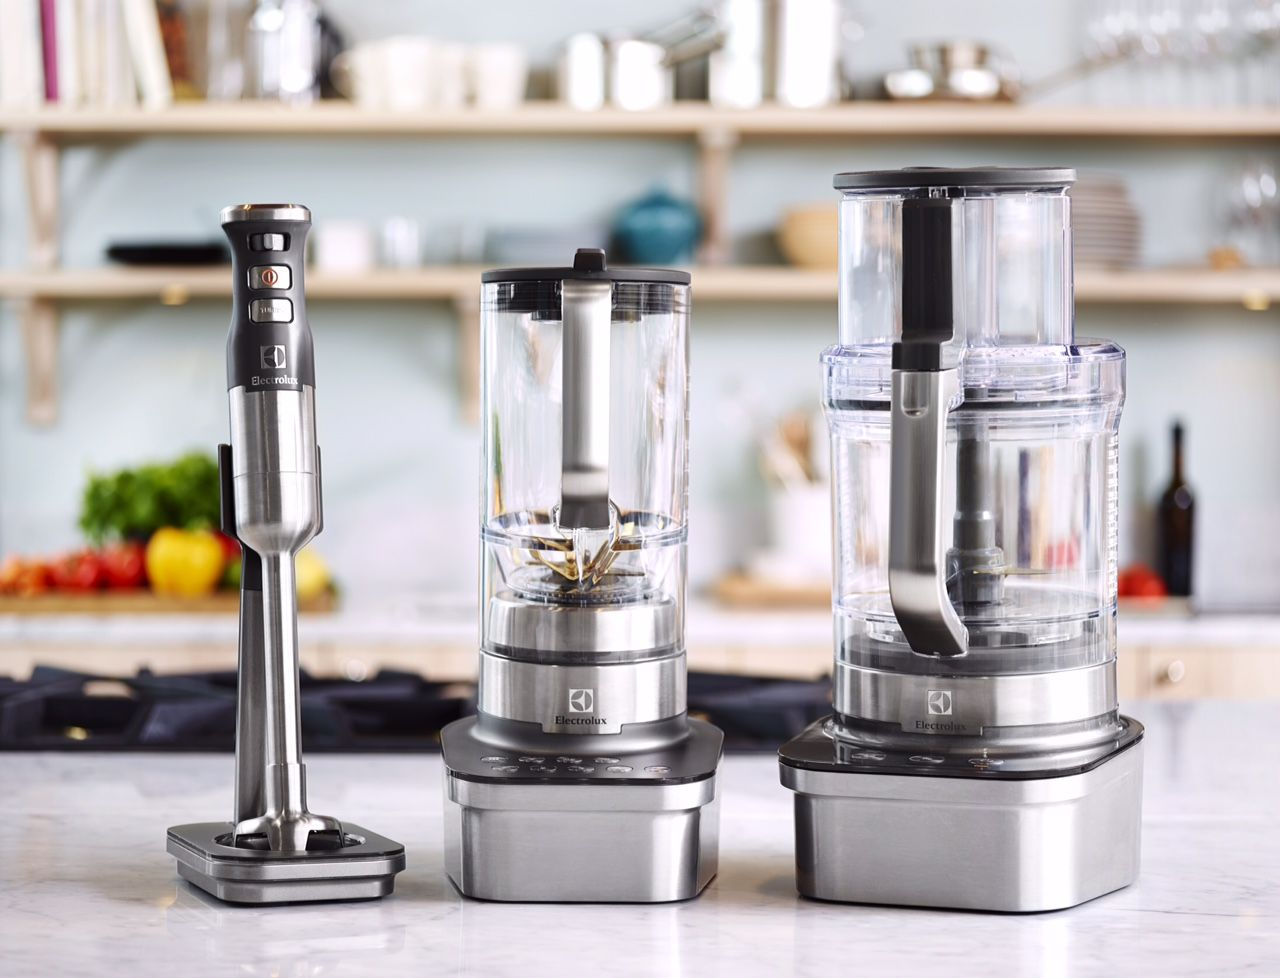 Electrolux Introduces State Of The Art Small Kitchen From Small Kitchen  Appliances Australia